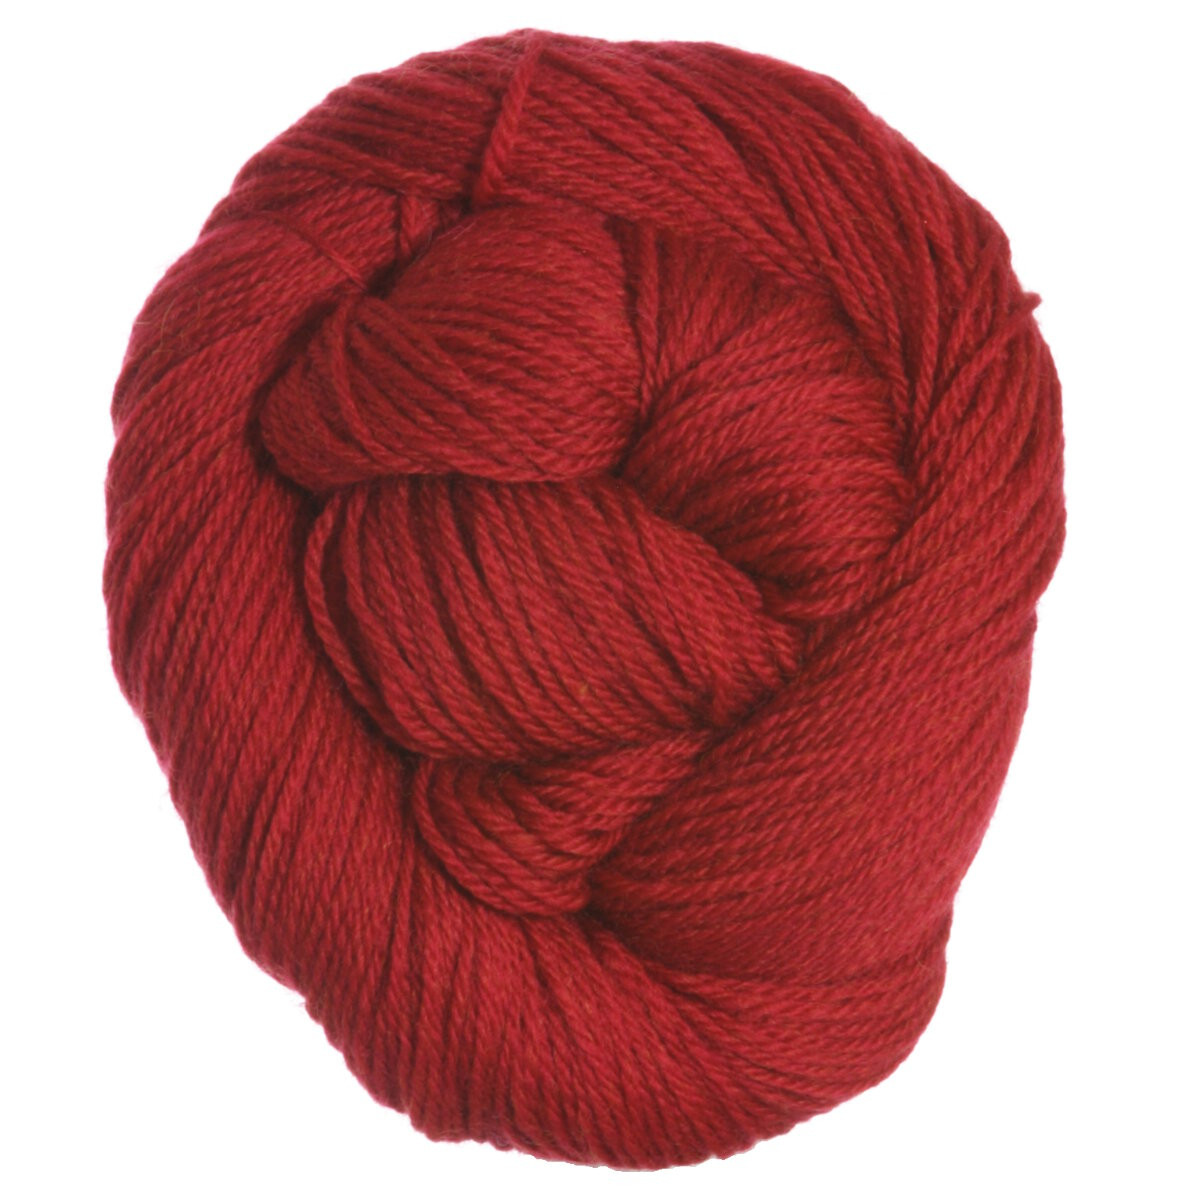 Lace Yarn Elegant Crystal Palace Allegro Lace Yarn 3028 Tandoori at Jimmy Of Amazing 44 Pictures Lace Yarn